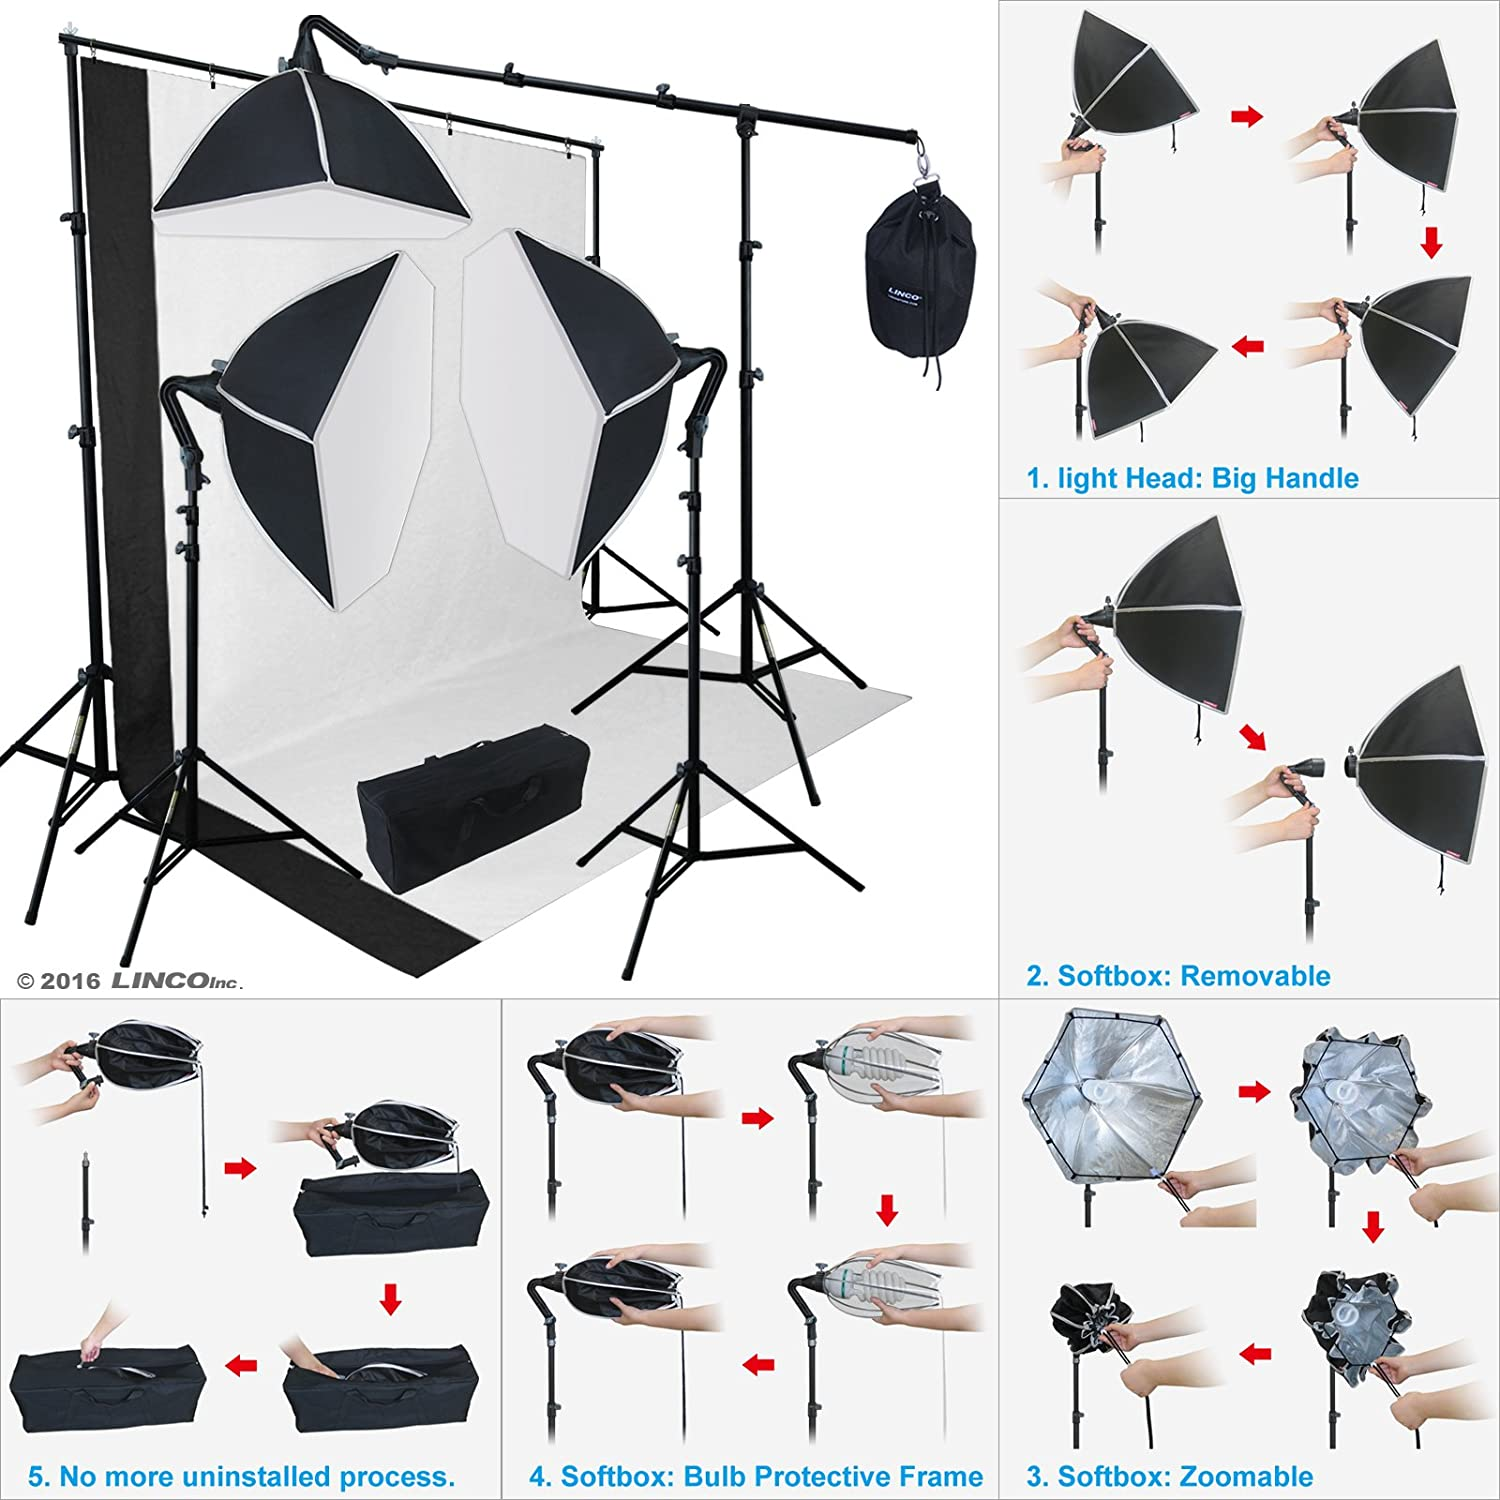 LINCO Lincostore Morning Glory Softbox Studio Lighting Kit AM149 Perfect Effect and No Uninstalled Process